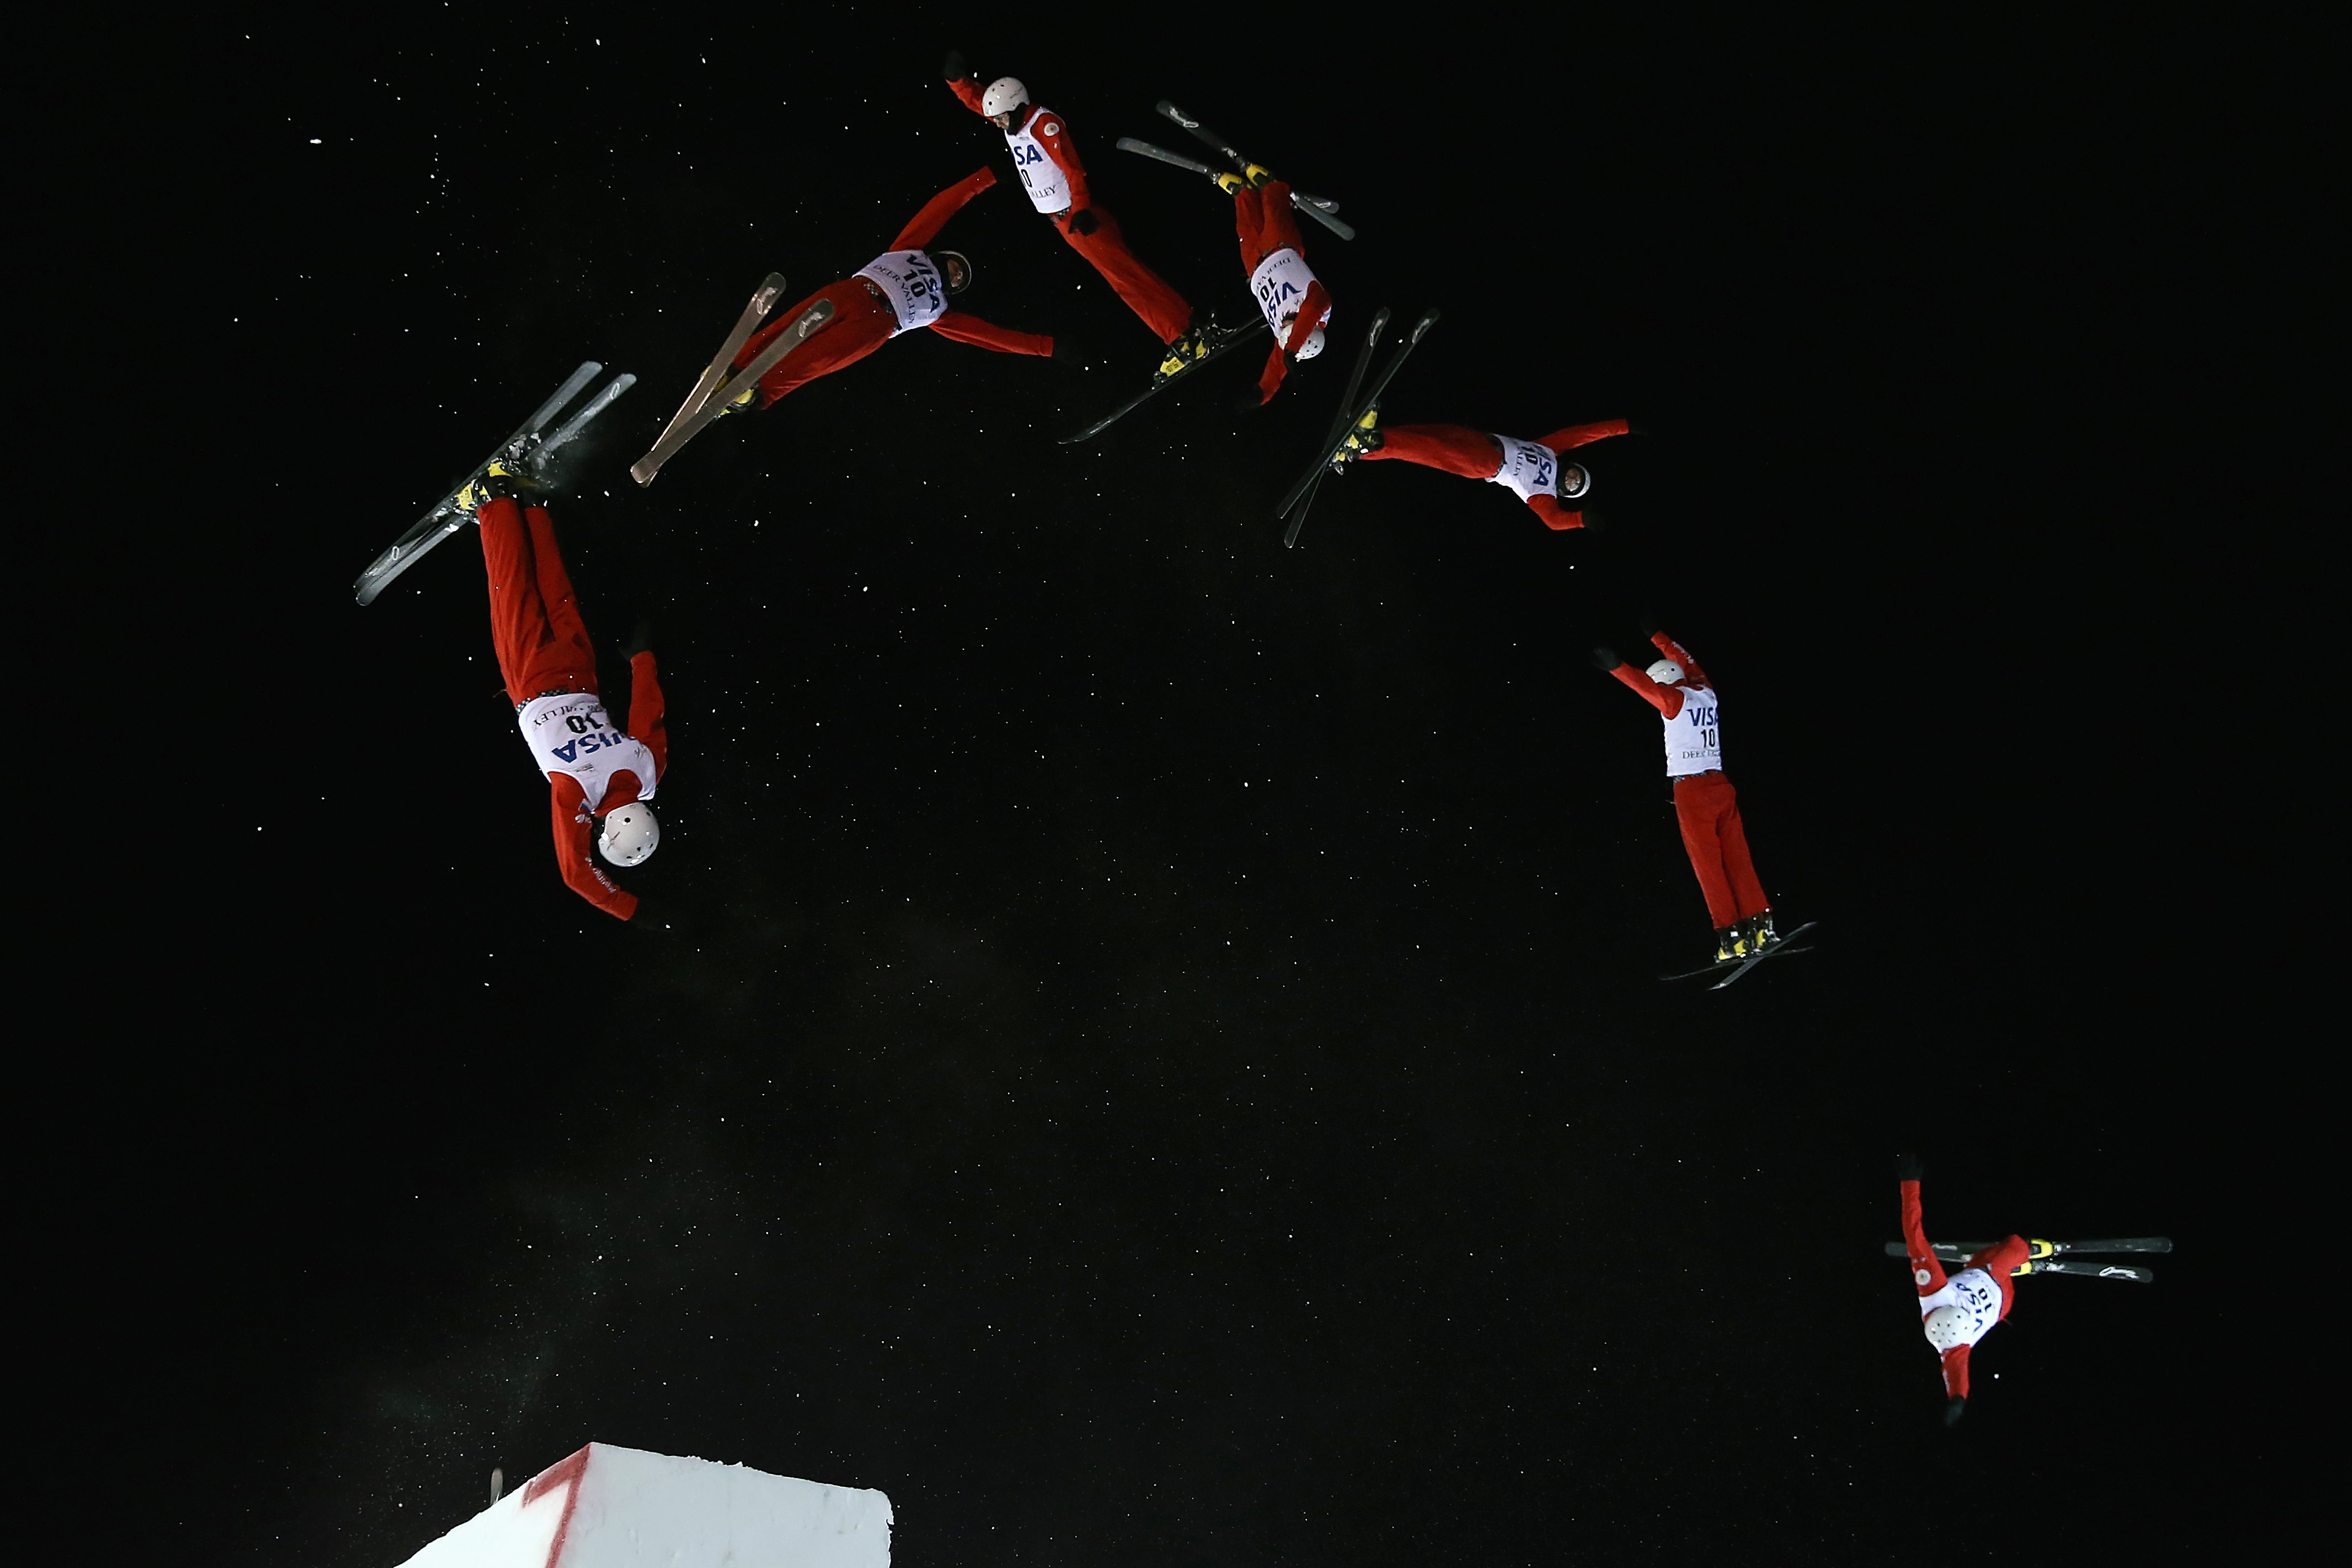 PARK CITY, UT - FEBRUARY 05:  (EDITORS NOTE: Multiple exposures were combined in camera to produce this image.) Petr Medulich of Russia jumps to first place in the men's FIS Freestyle Skiing Aerials World Cup at Deer Valley on February 5, 2016 in Park City, Utah.  (Photo by Doug Pensinger/Getty Images)